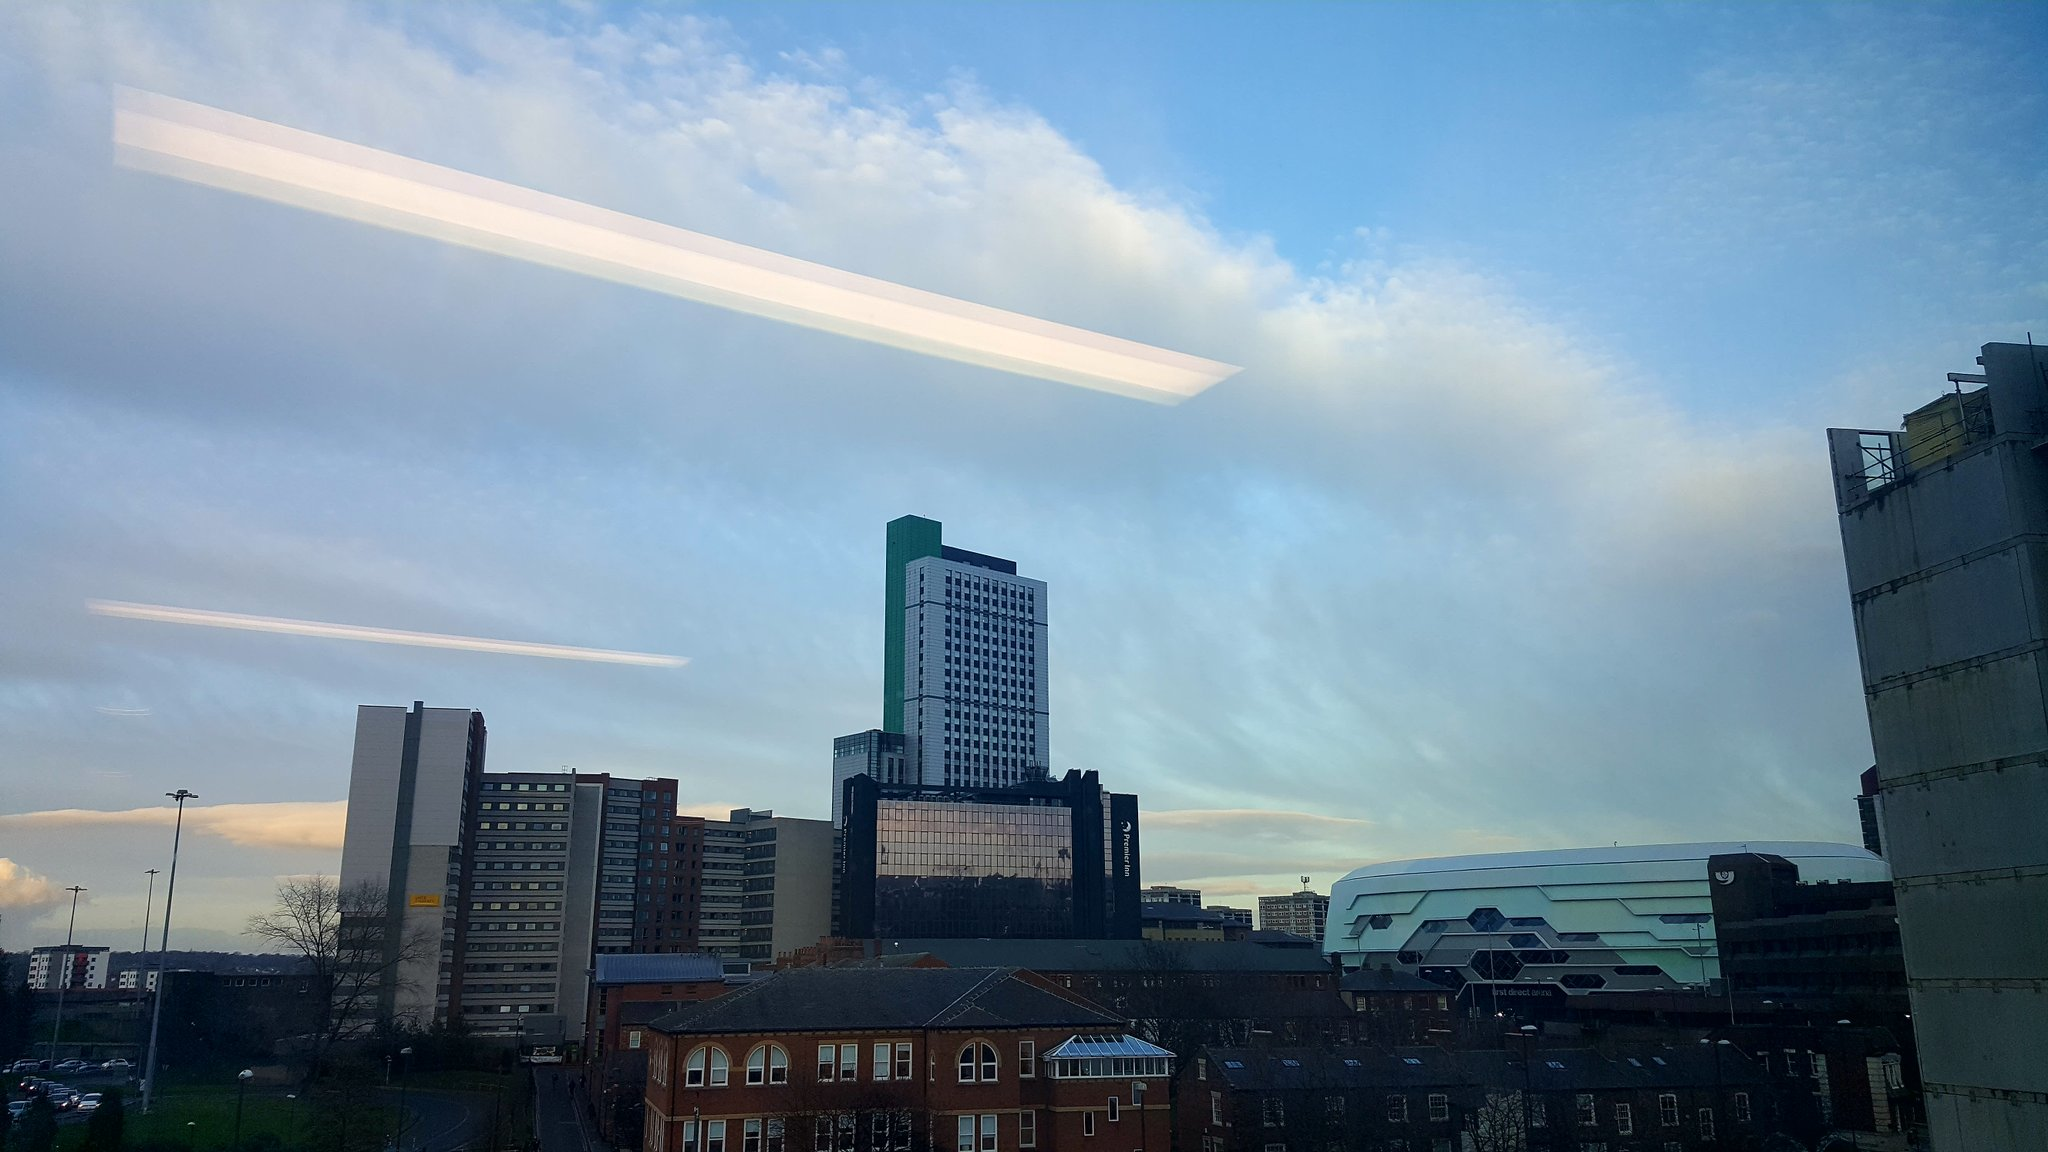 Gorgeous view of Leeds from the window for tonights @thinkBIM @WatesGroup @nick_tune @CalibreSimon set up & ready to go! #tbim2017 https://t.co/aRq72j3OYc